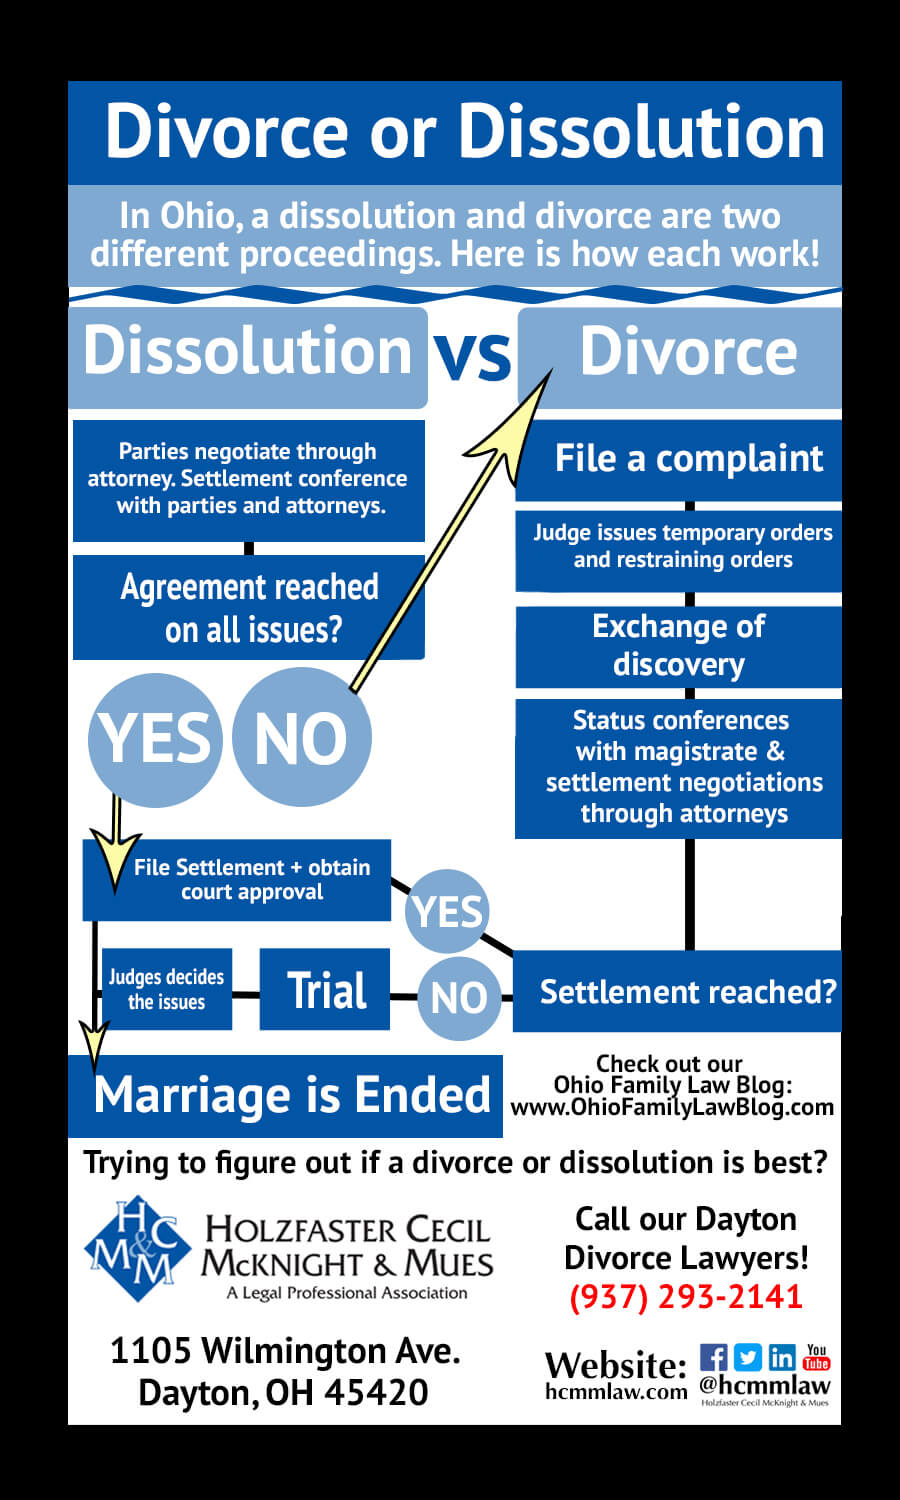 Dissolution or Divorce in Ohio Infographic